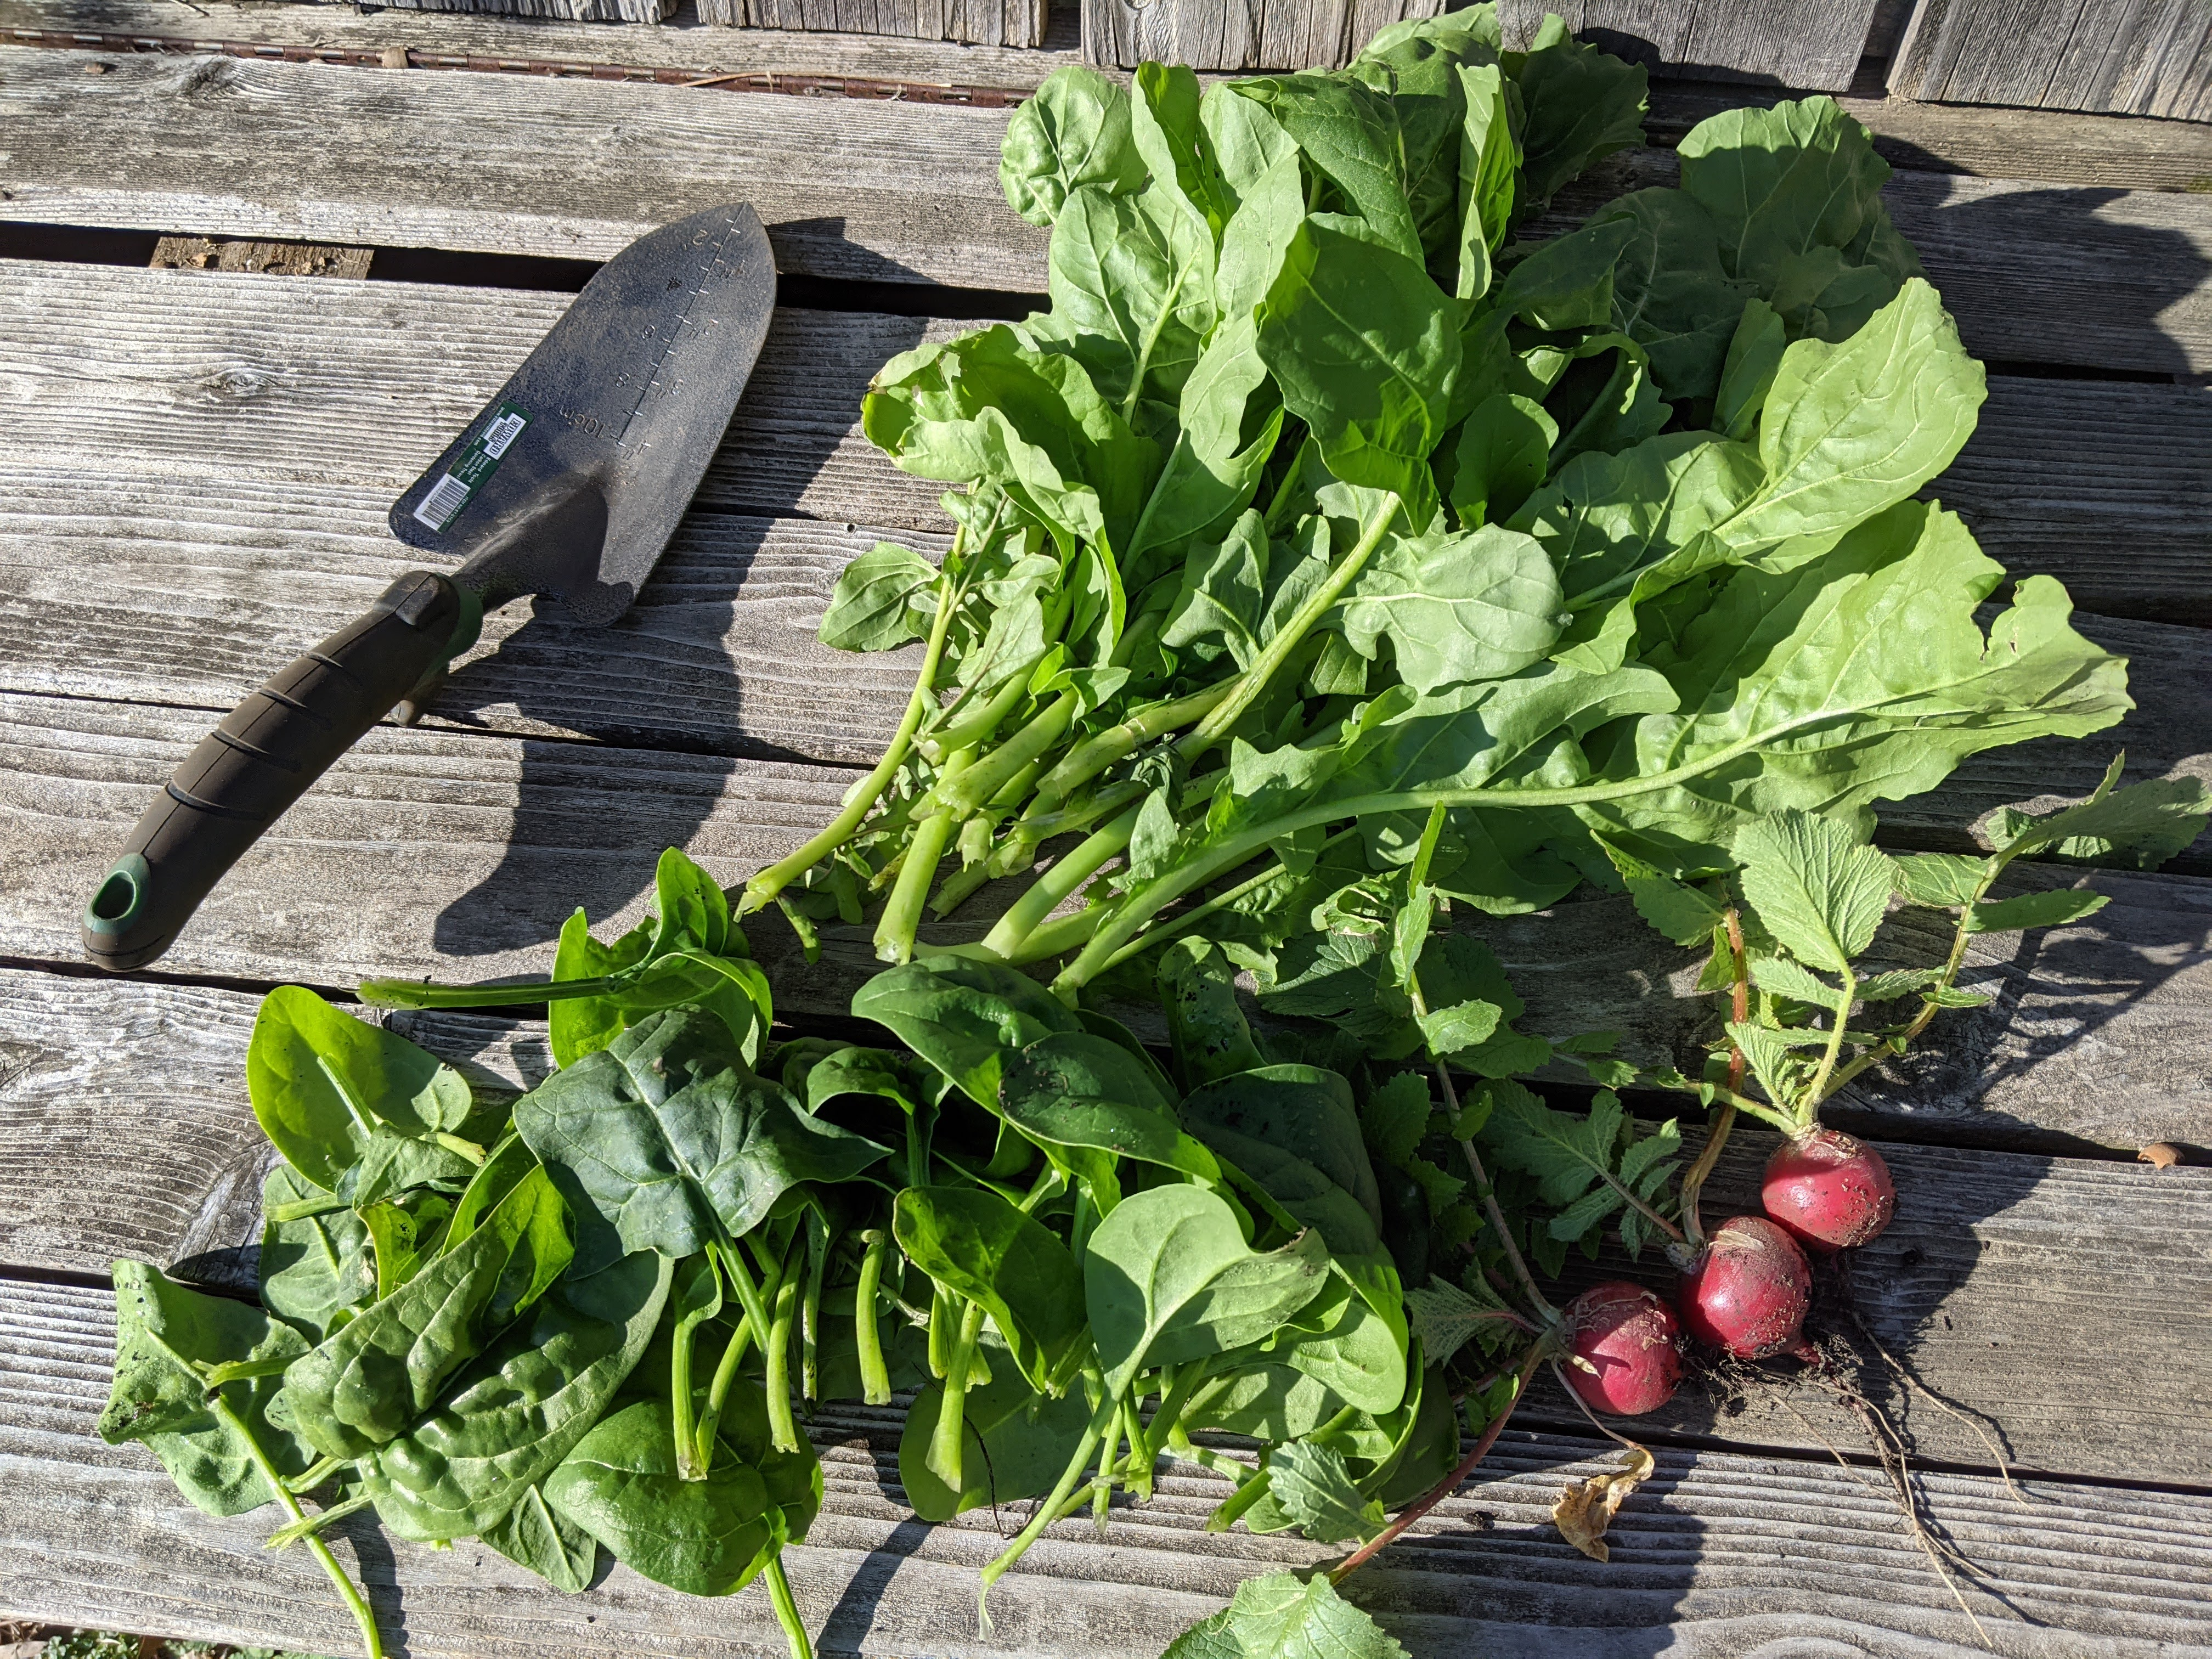 On a wooden surface, a garden trowel lies in the sun next to some freshly harvsted, leafy radishes.